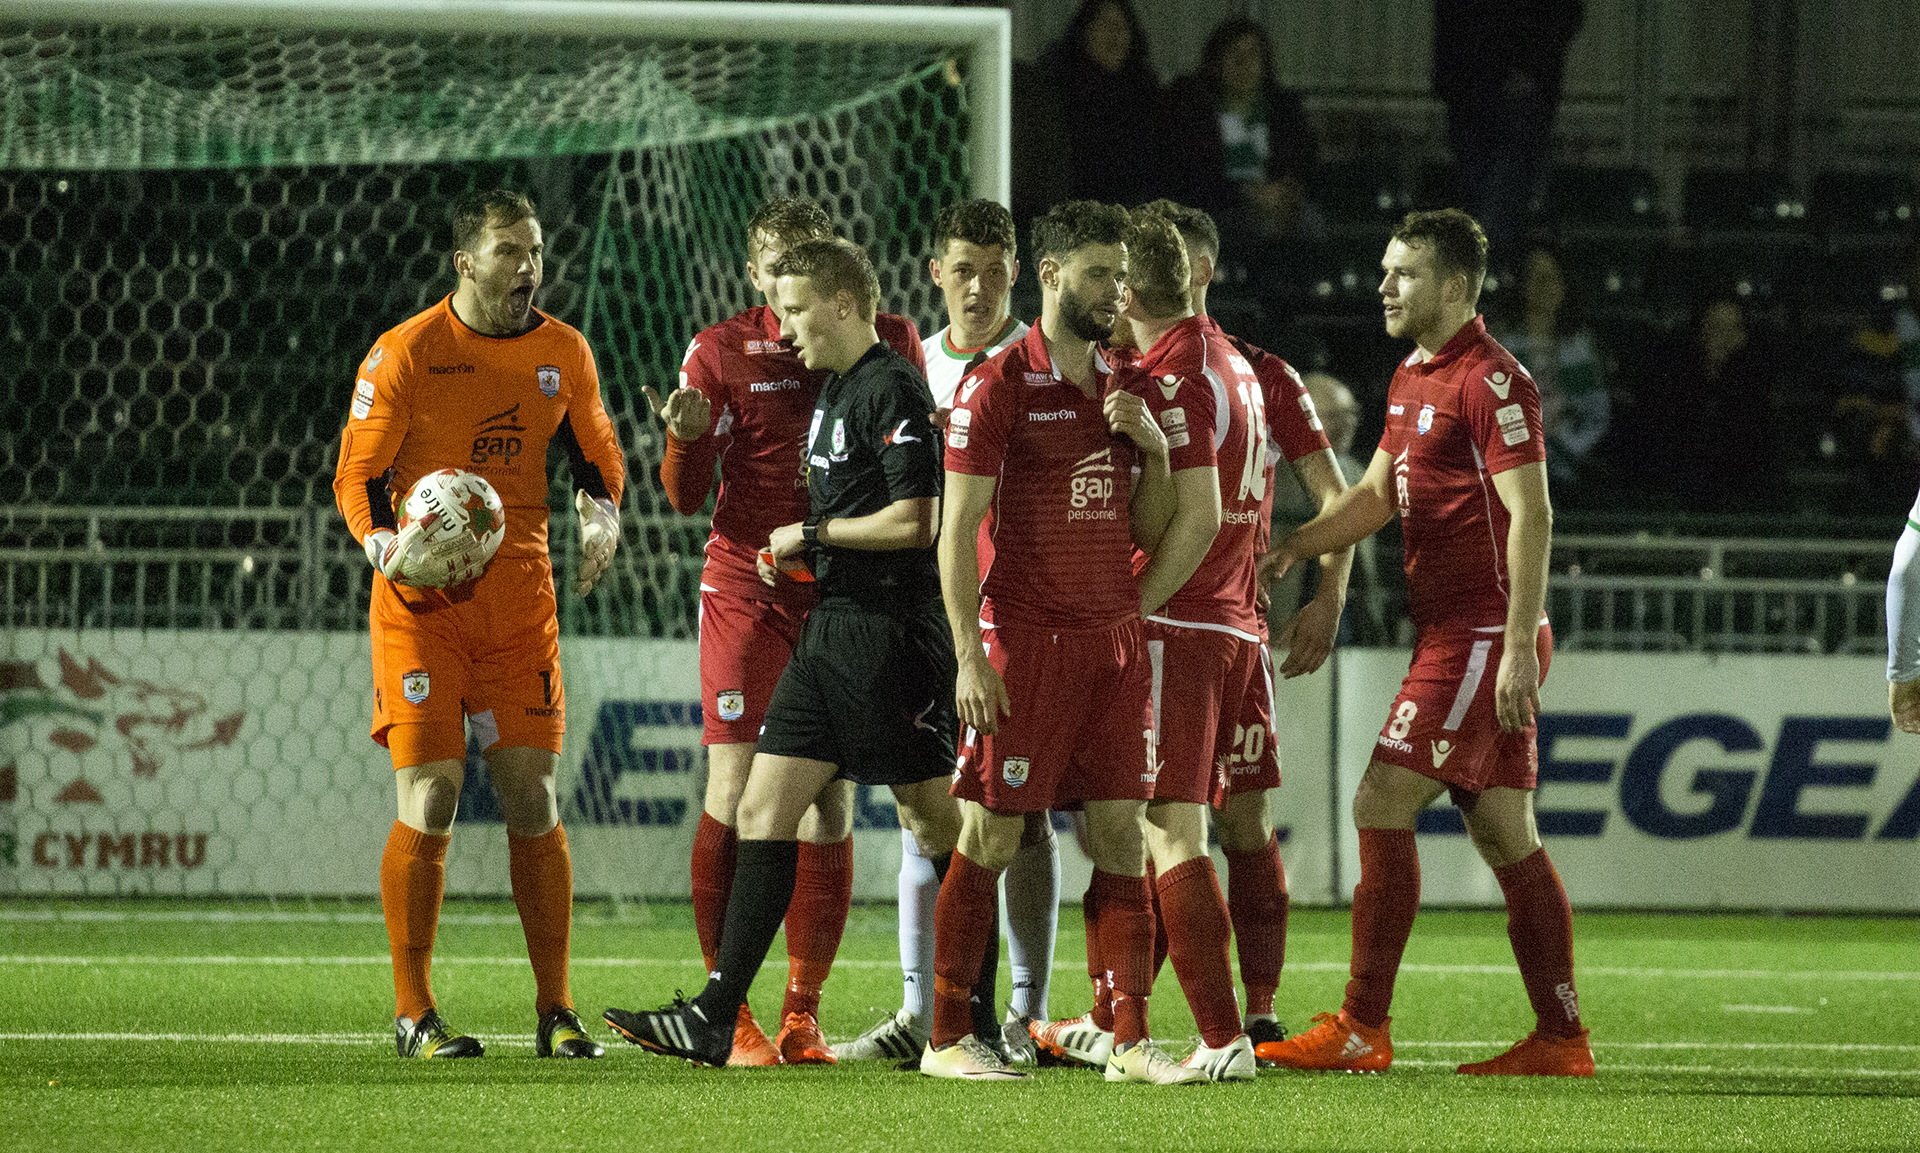 The Nomads' players react angrily as Nathan Woolfe is shown a straight red card